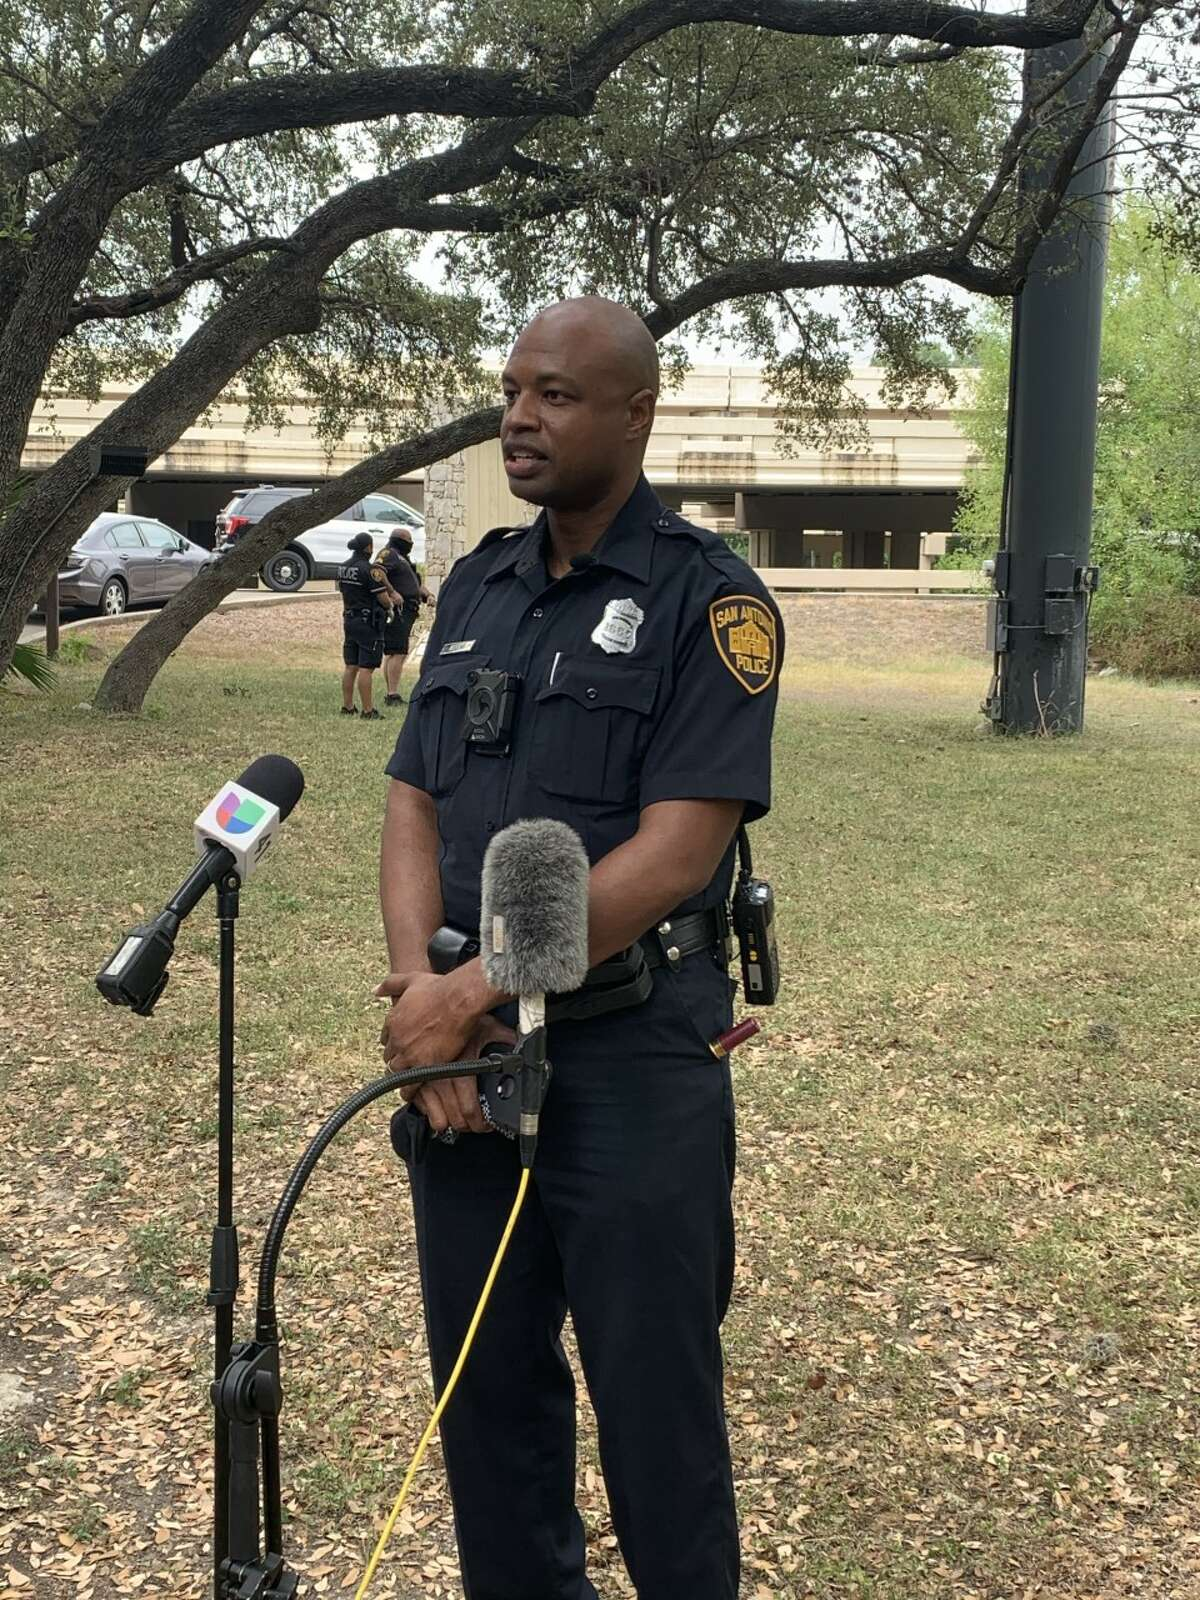 San Antonio police are trying to determine if foul play was involved after a body was found next to Salado Creek Tuesday morning.